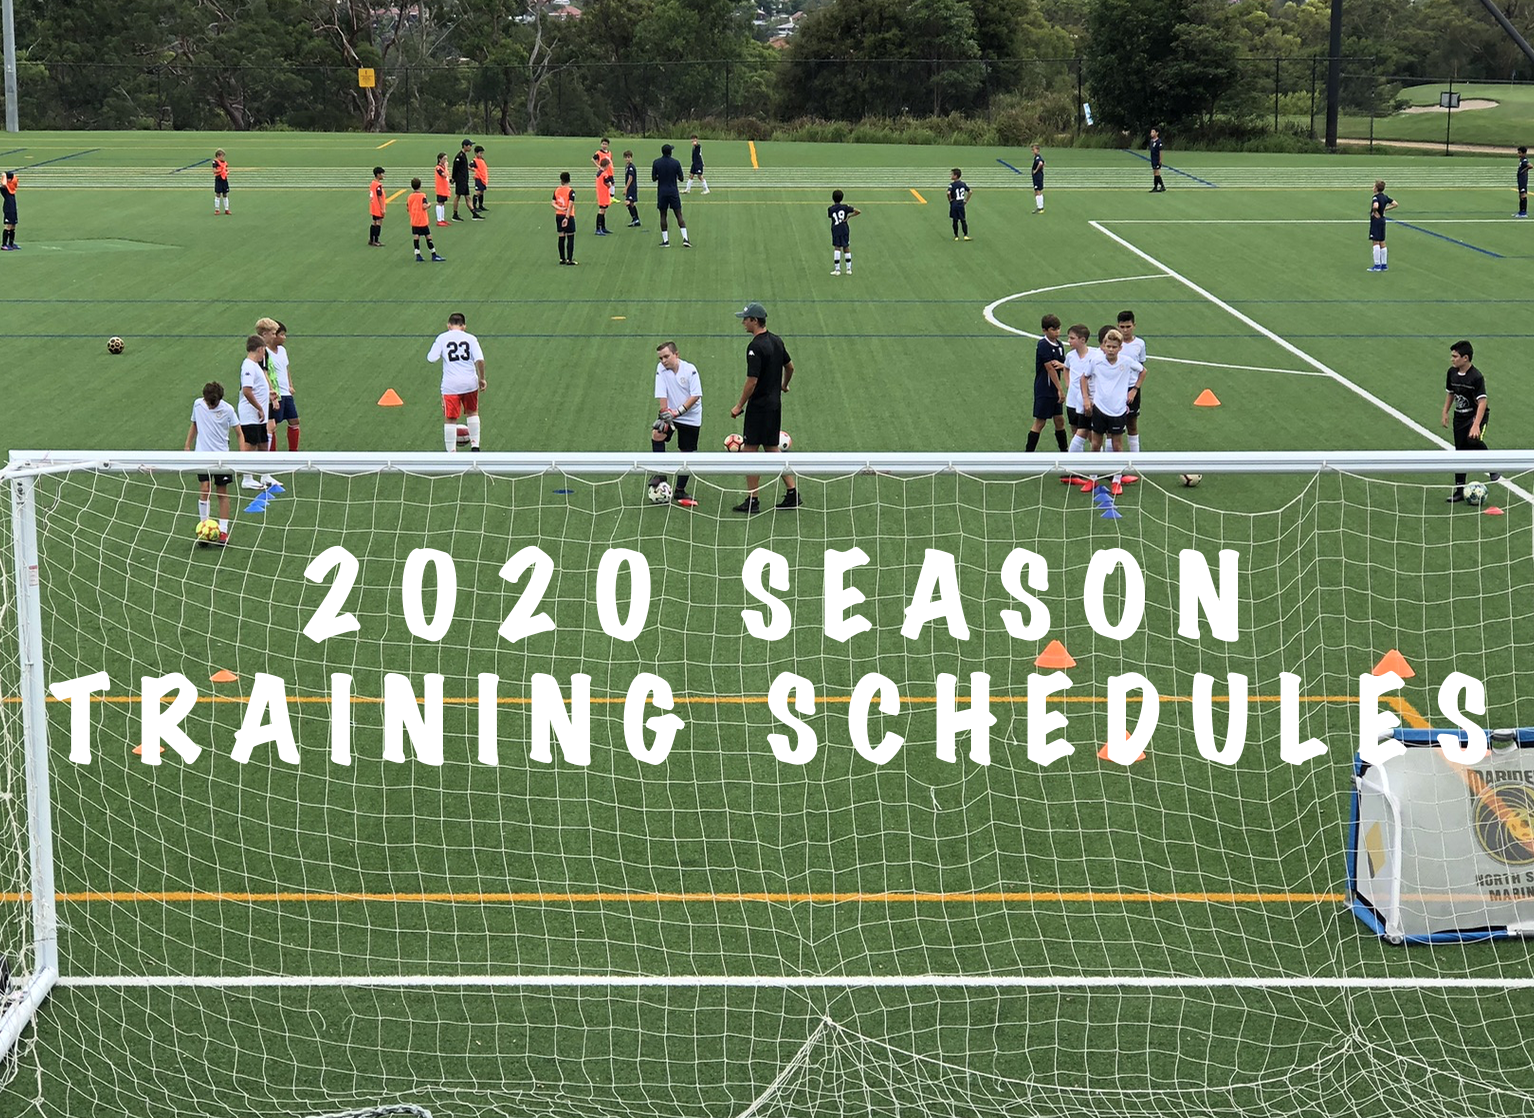 2020 Training Schedules